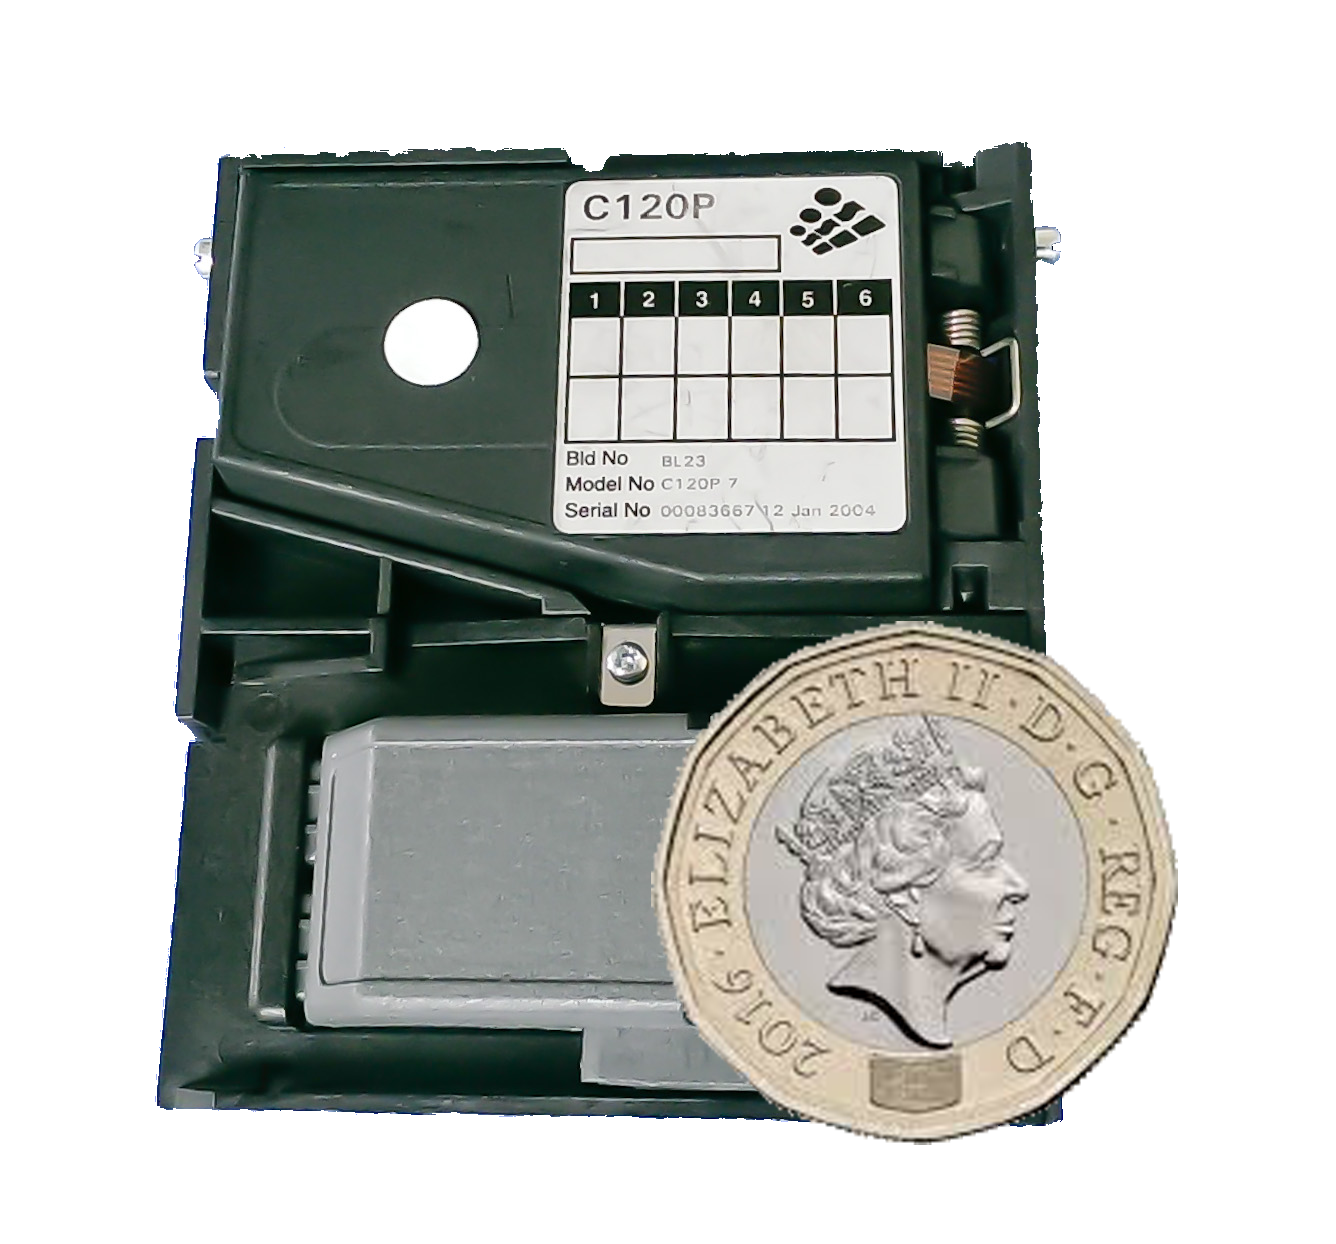 C120P Validator - New £1 Upgrade